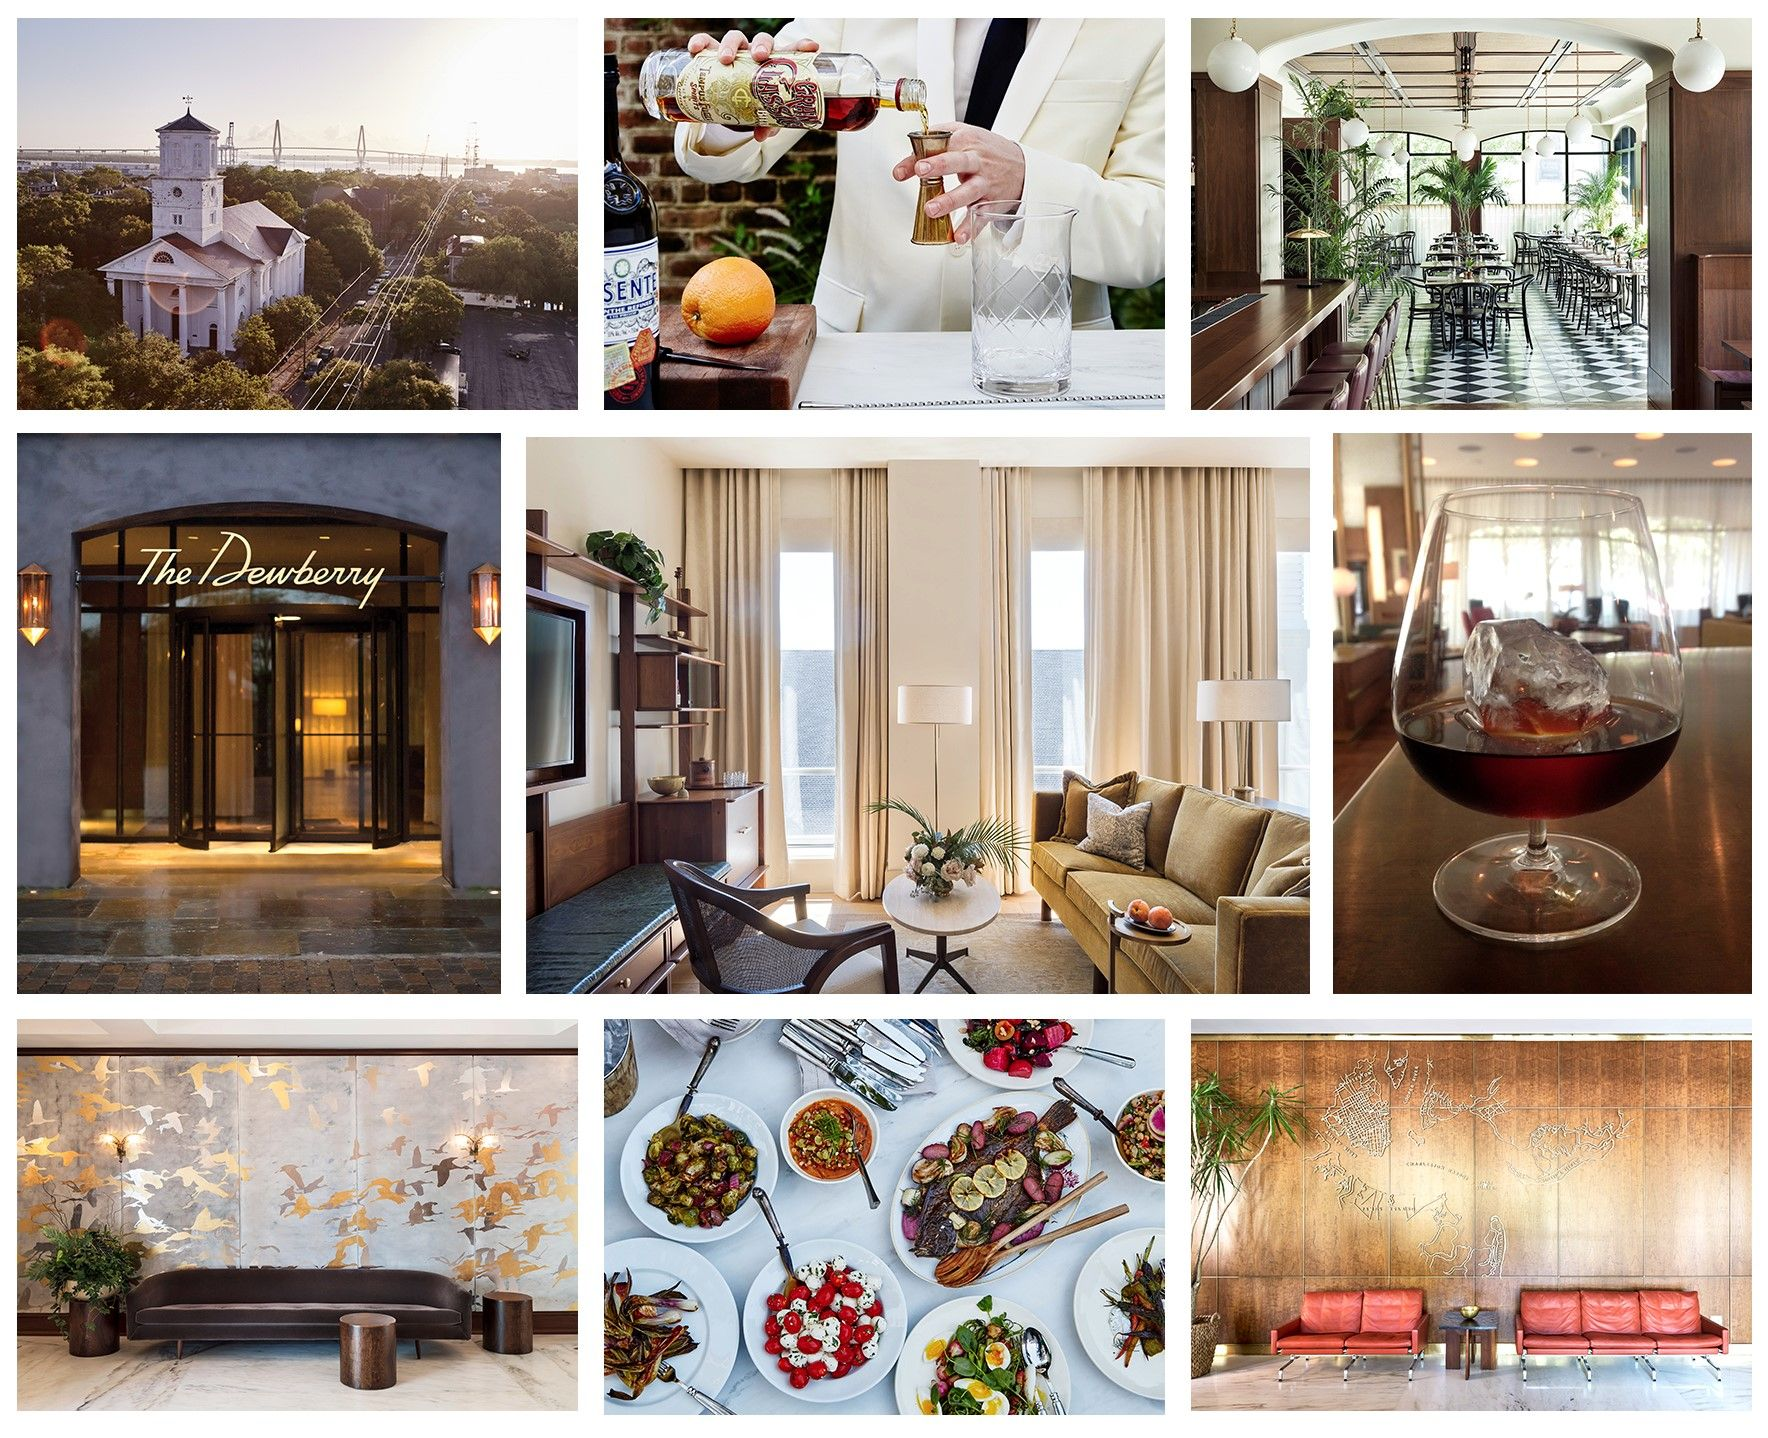 The Dewberry A World Class Boutique Hotel In Charleston Sc Charleston Hotels Home Hotel Restaurant